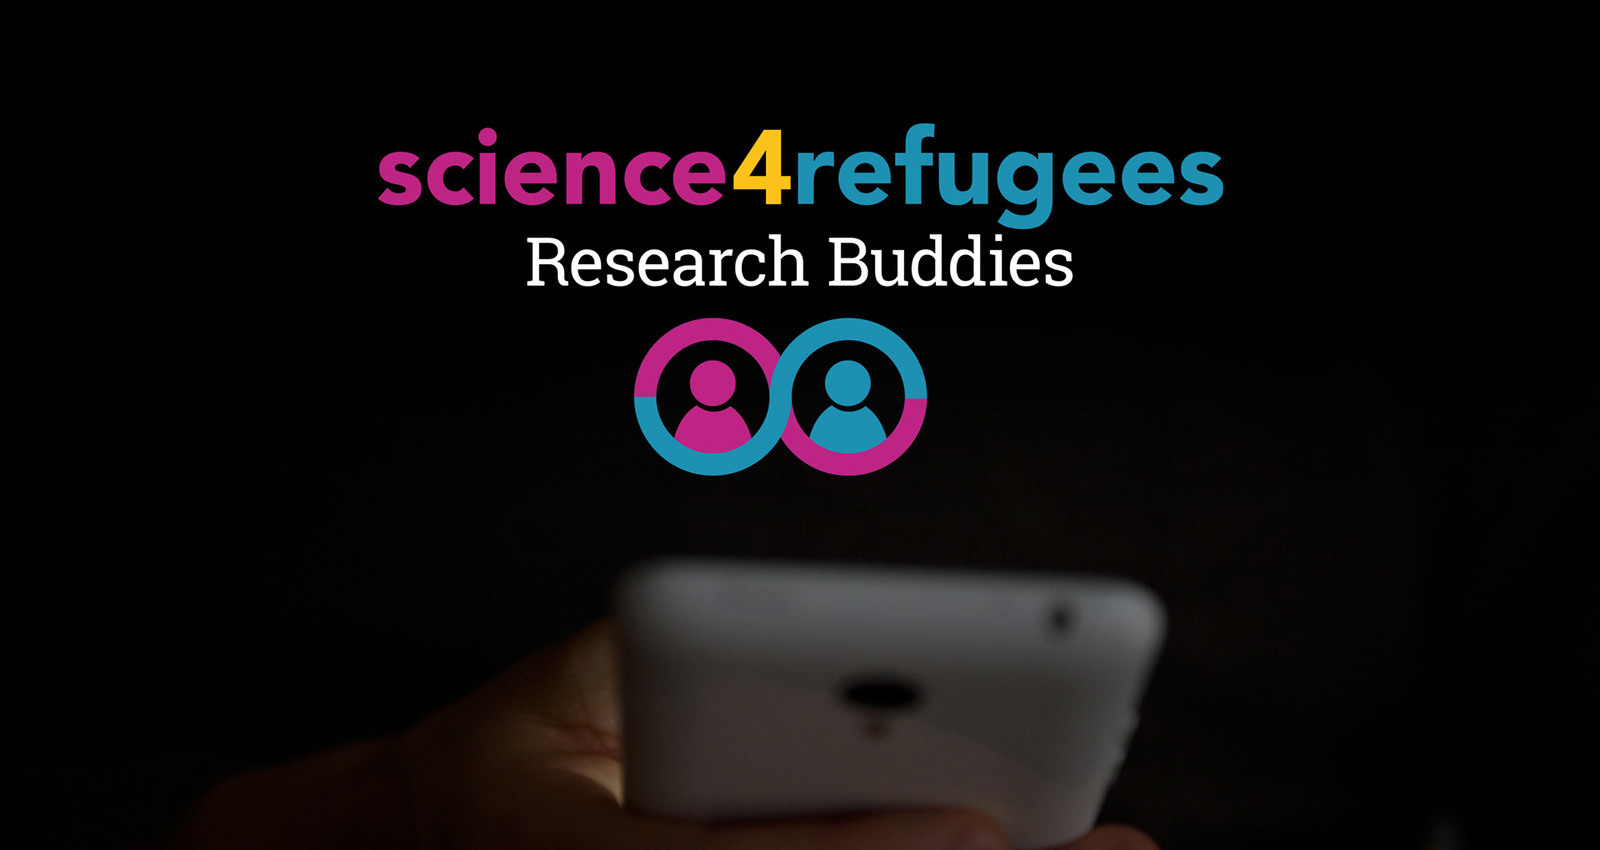 Science4Refugees - ResearchBuddies